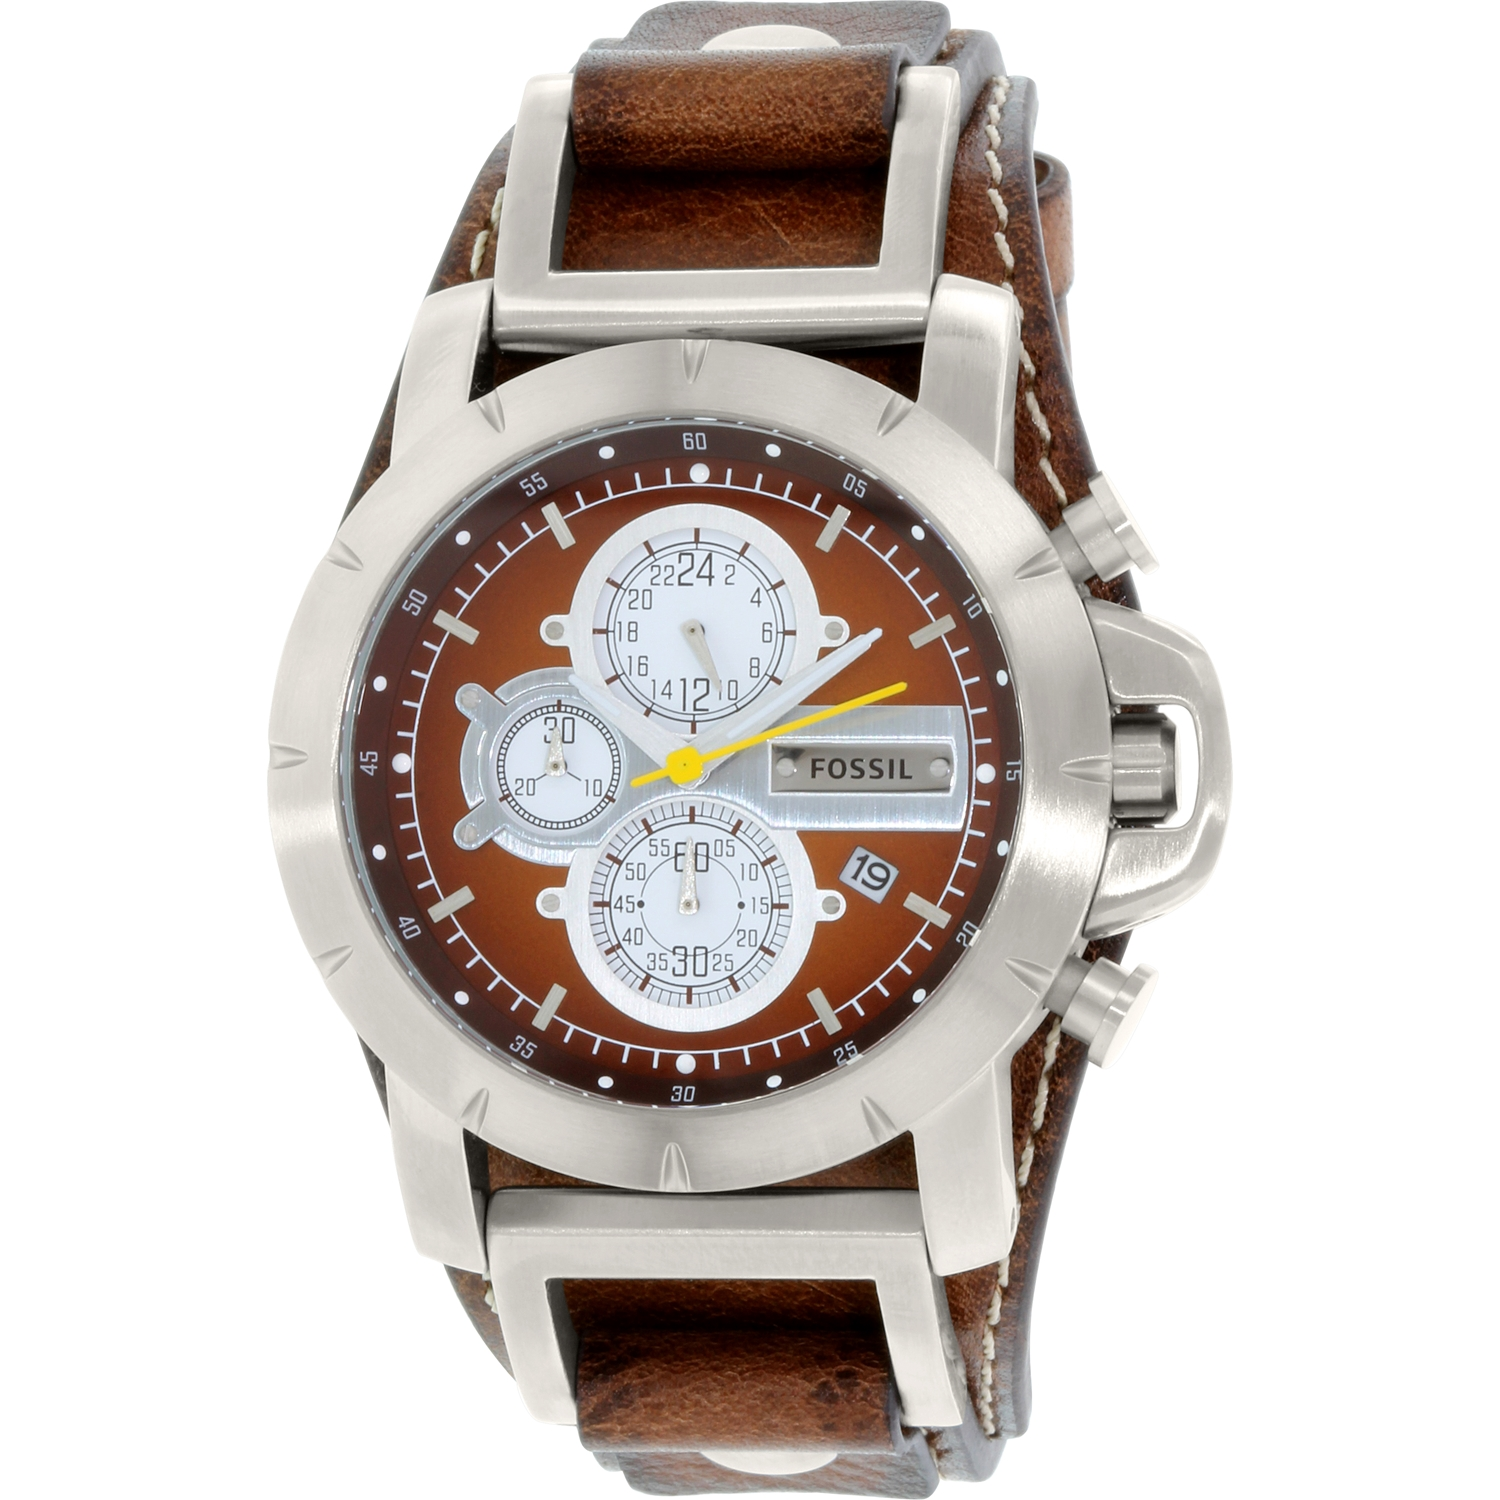 Fossil Men's Jake JR1157 Brown Leather Analog Quartz Watch